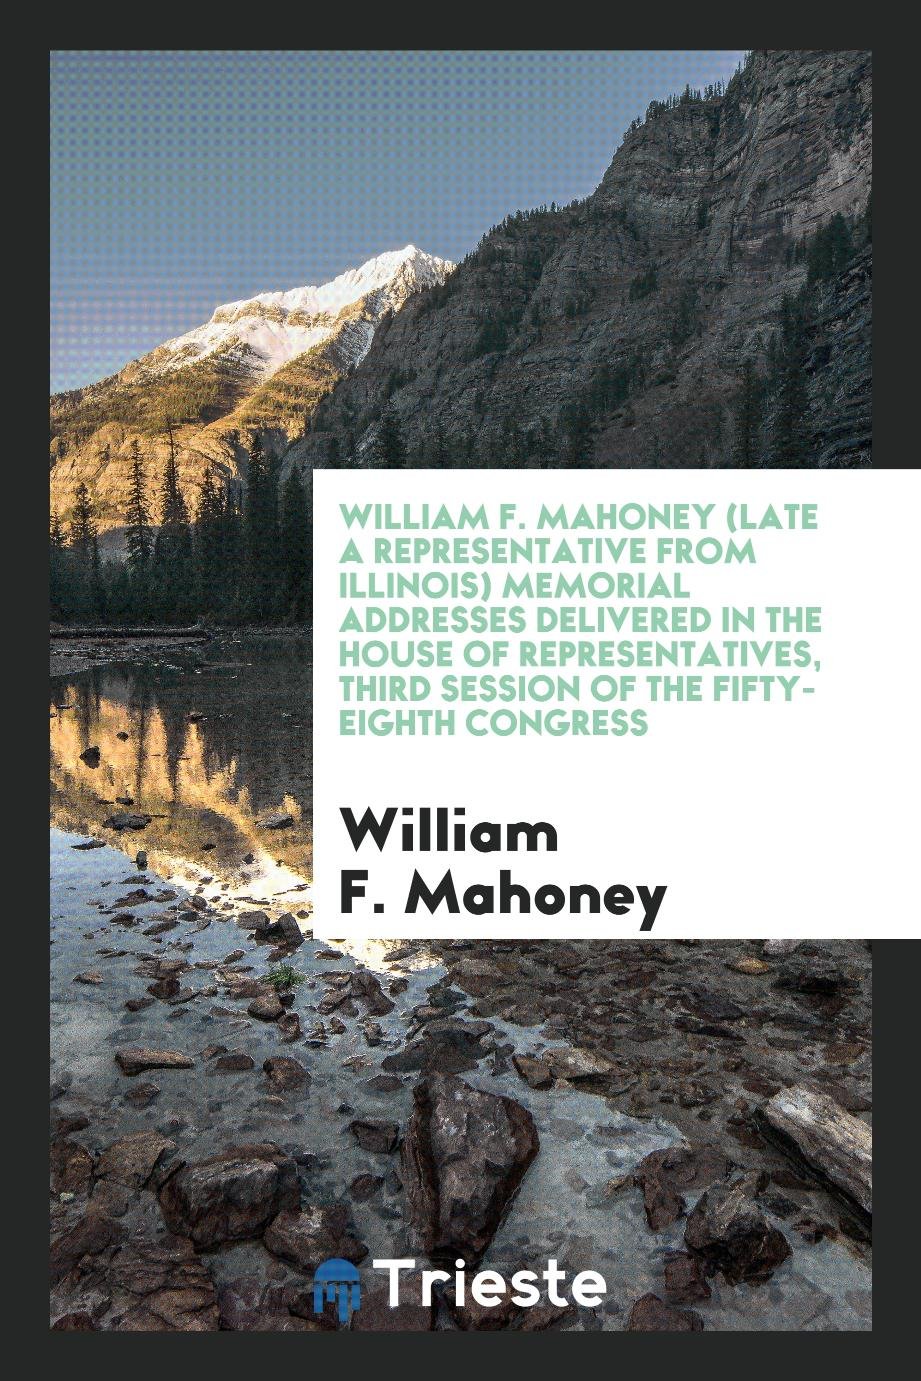 William F. Mahoney (late a representative from Illinois) Memorial addresses delivered in the House of Representatives, third session of the Fifty-eighth Congress